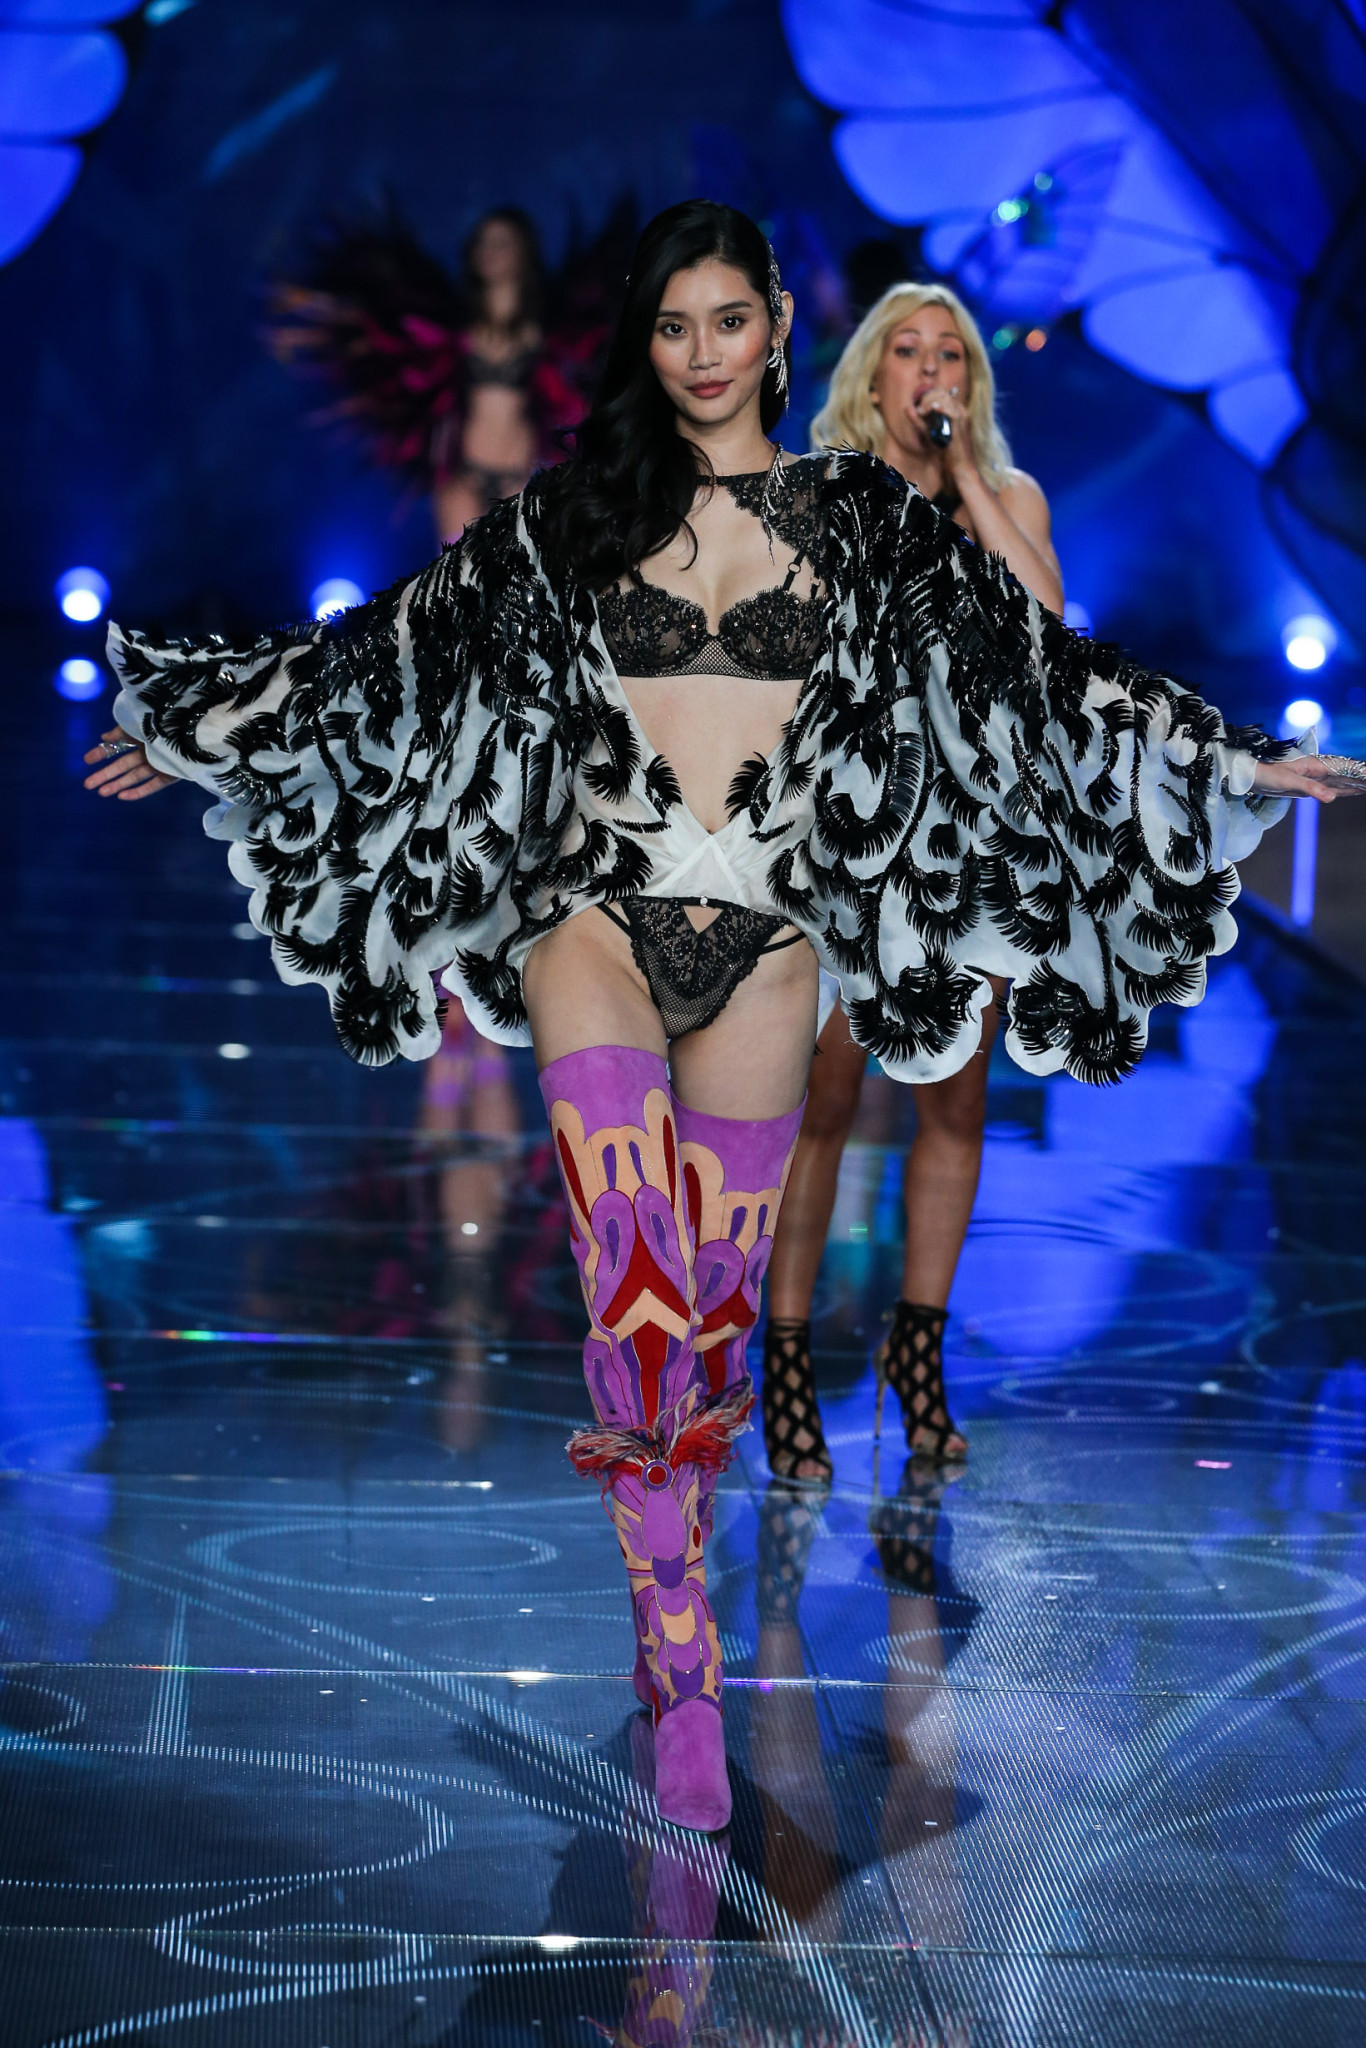 Model Ming Xi walks the runway at the 2015 Victoria's Secret Fashion Show in New York City on November 10th, 2015